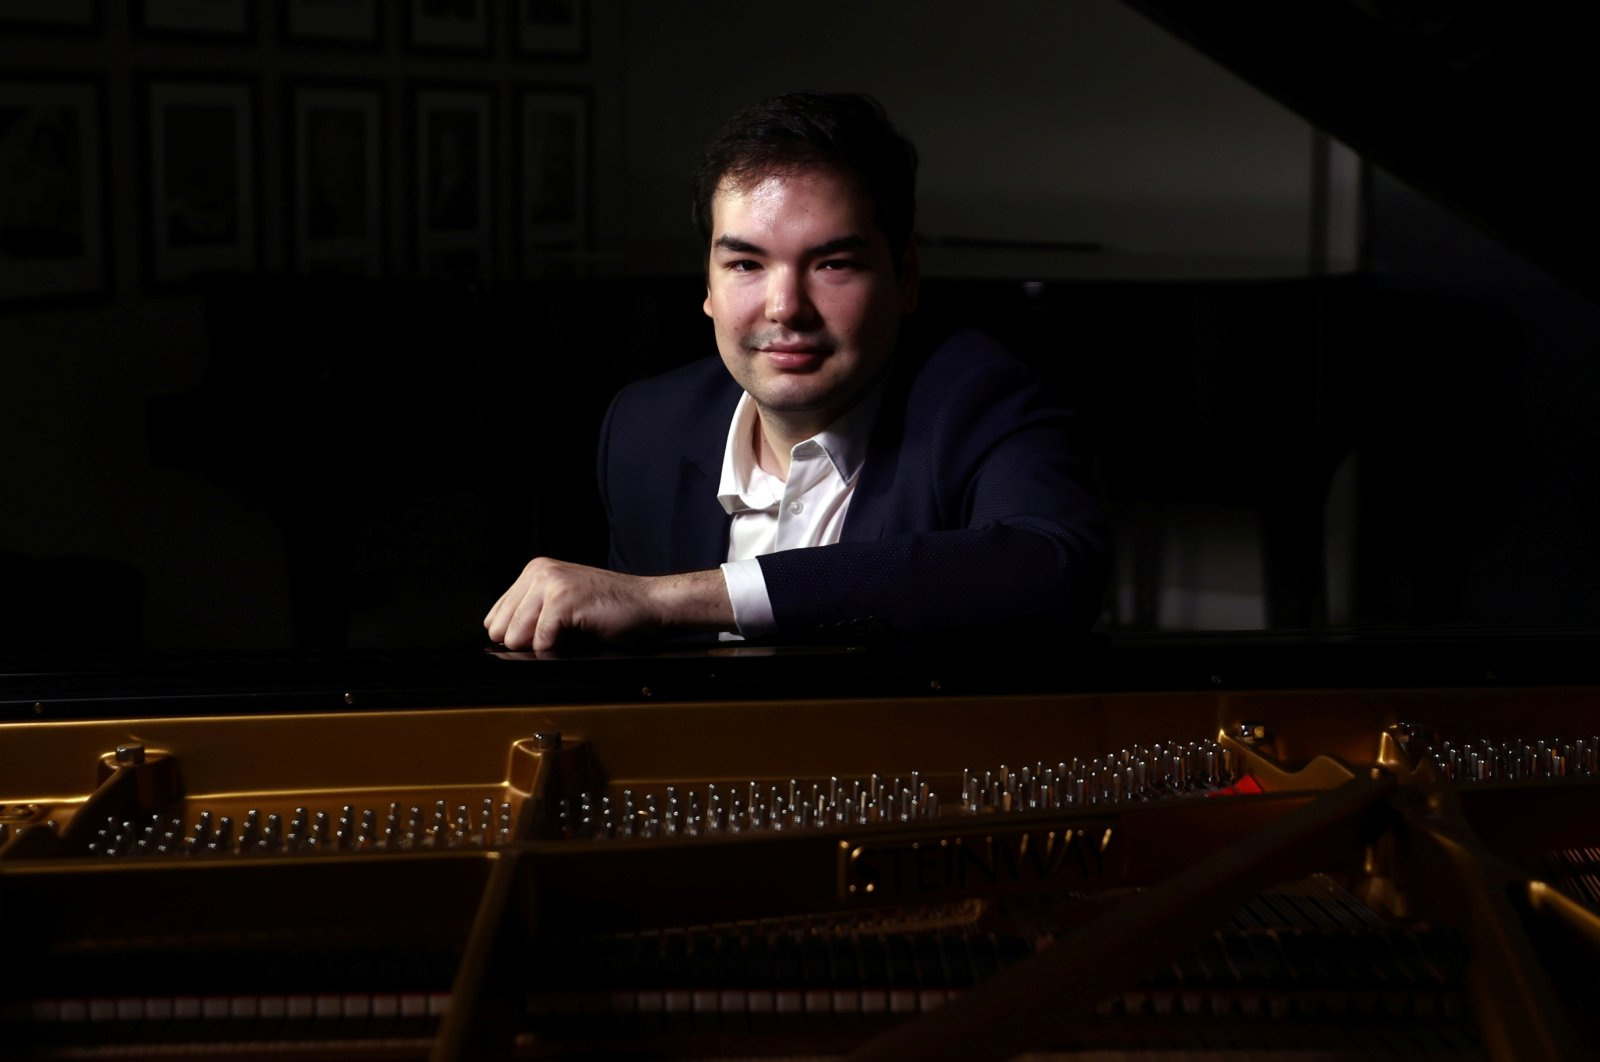 Kazakh pianist Alim Beysembayev poses for a portrait at Steinway Hall in London, the U.K., Sept. 20, 2021. (Reuters Photo)